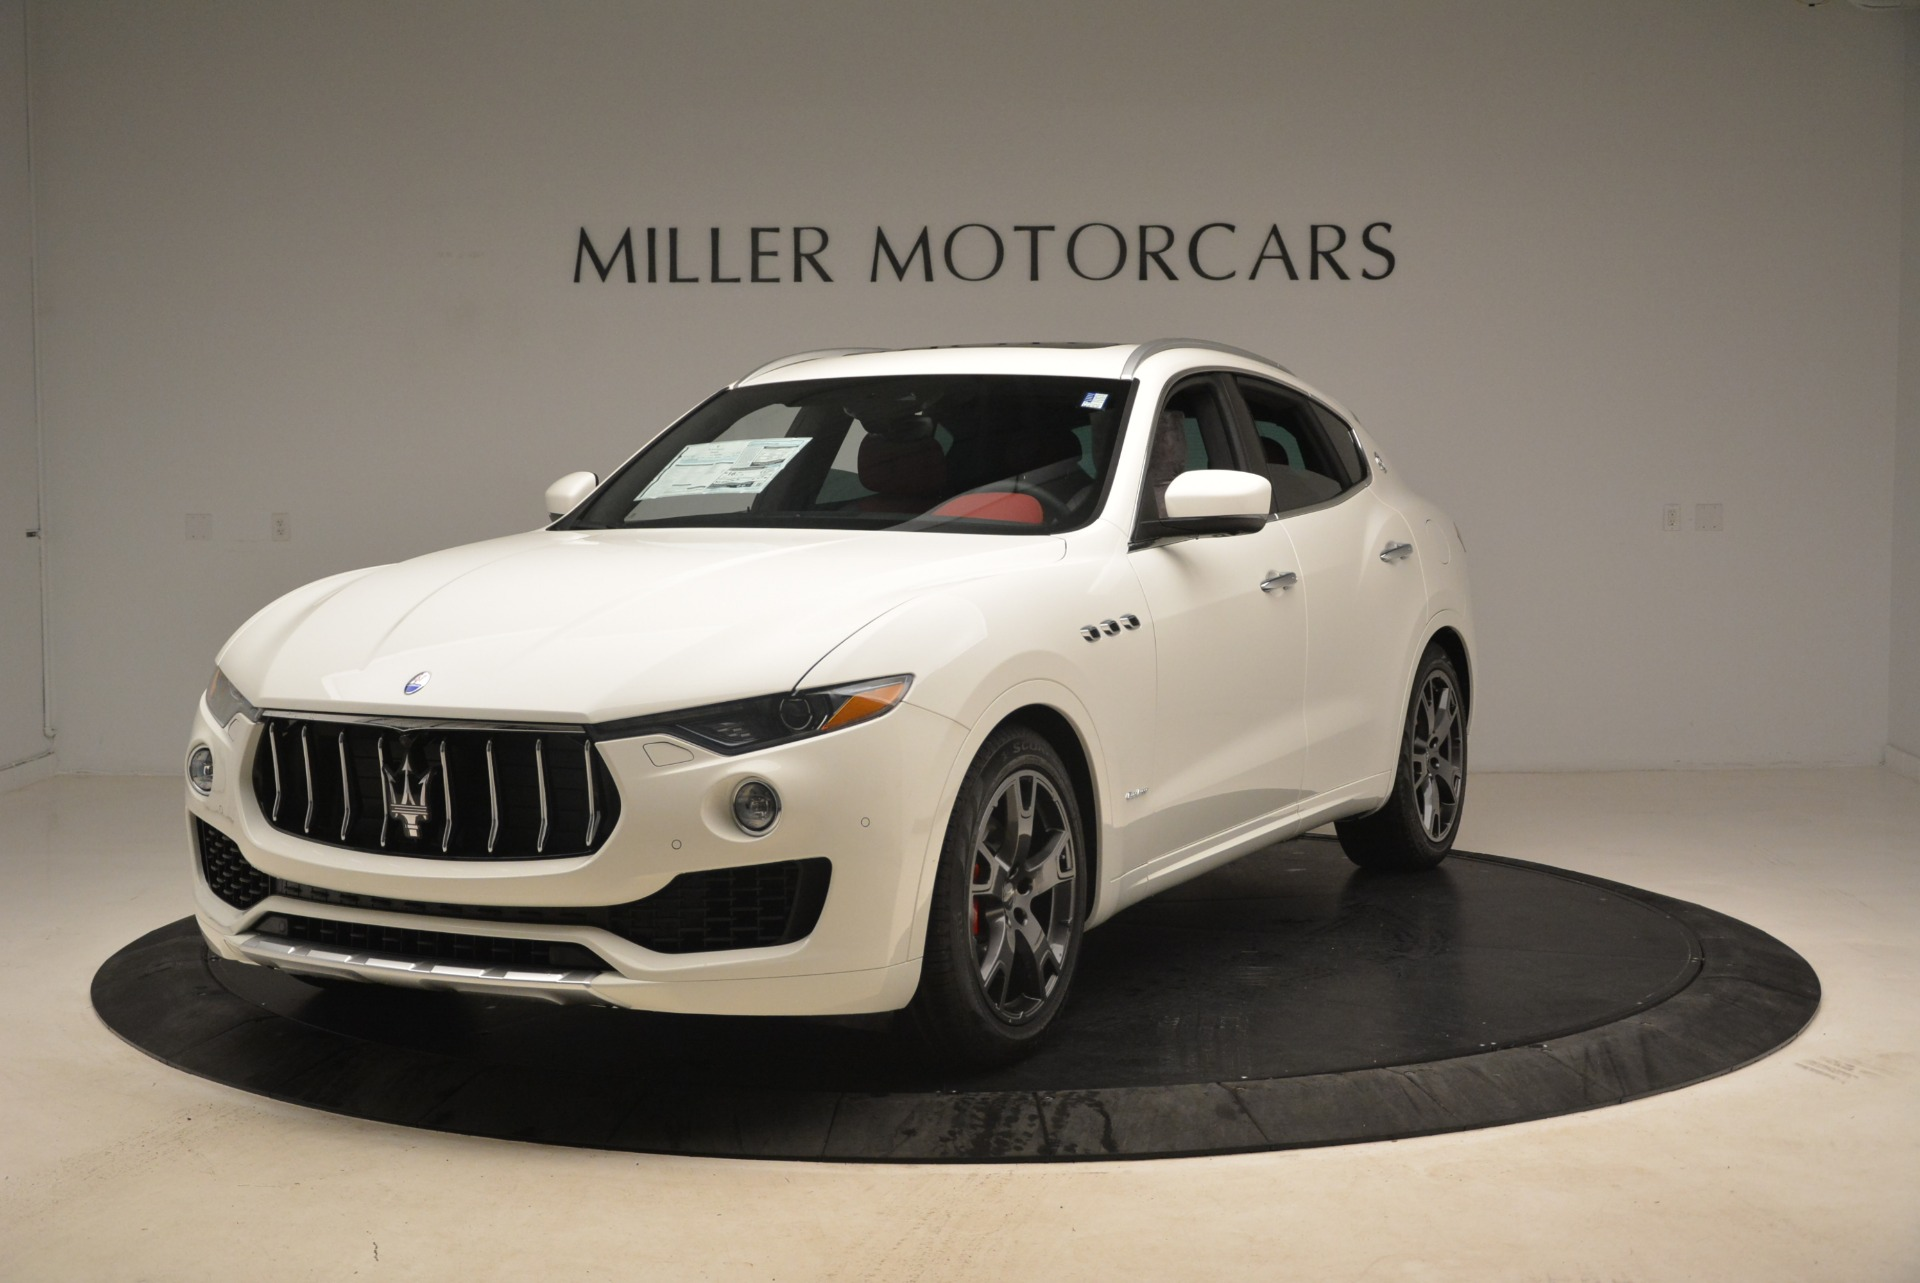 New 2019 Maserati Levante S Q4 GranLusso for sale Sold at Alfa Romeo of Westport in Westport CT 06880 1